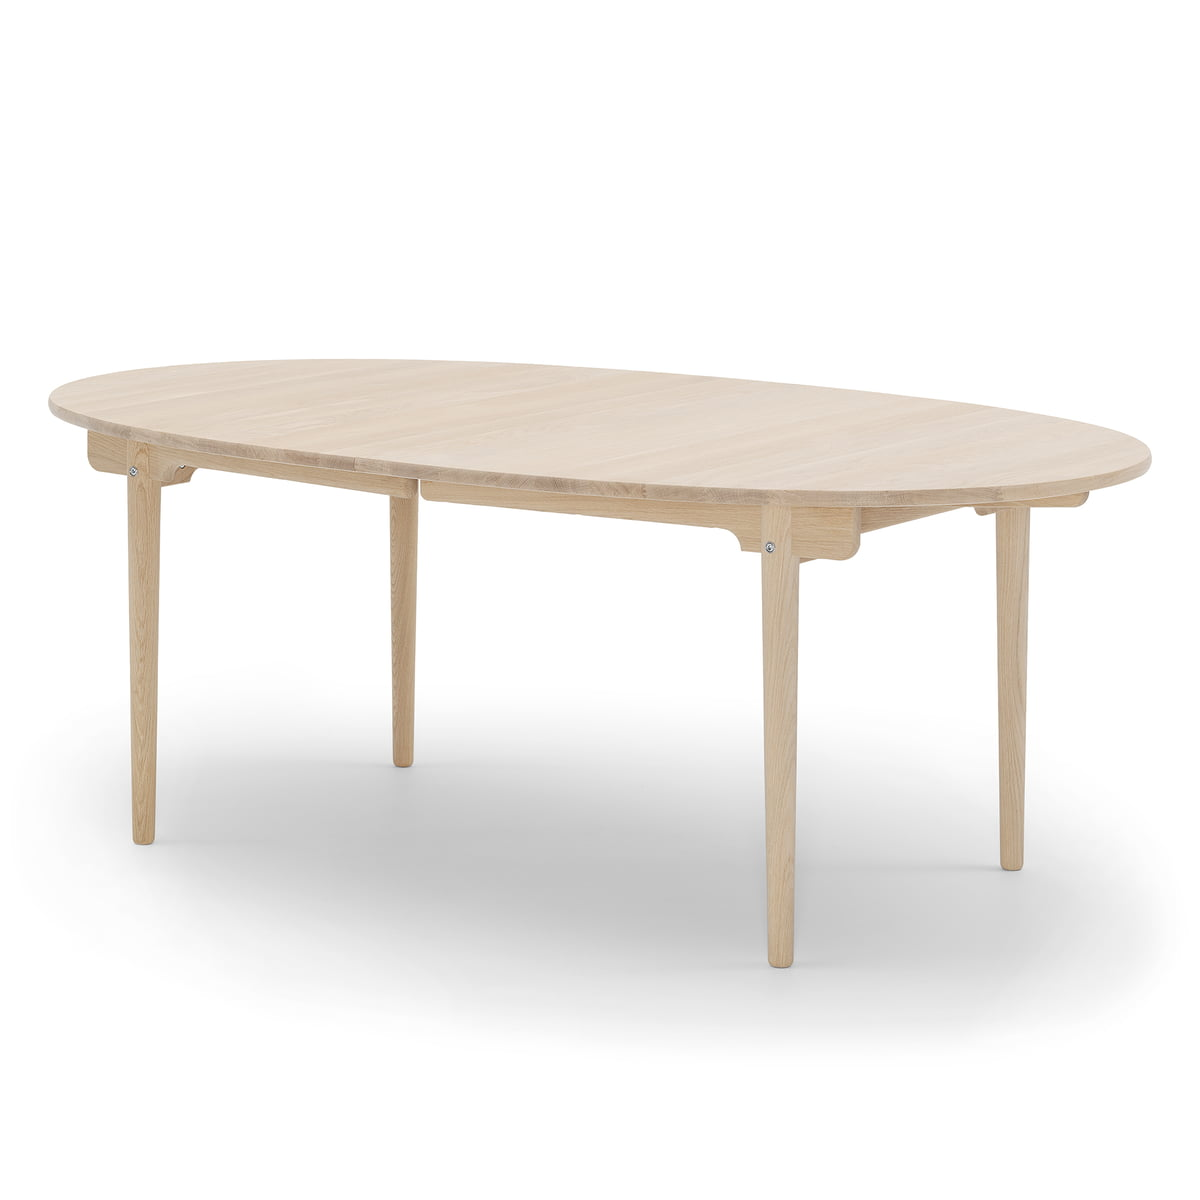 The Carl Hansen   CH338 Extendable Dining Table, 200 X 115 Cm, Soaped Oak